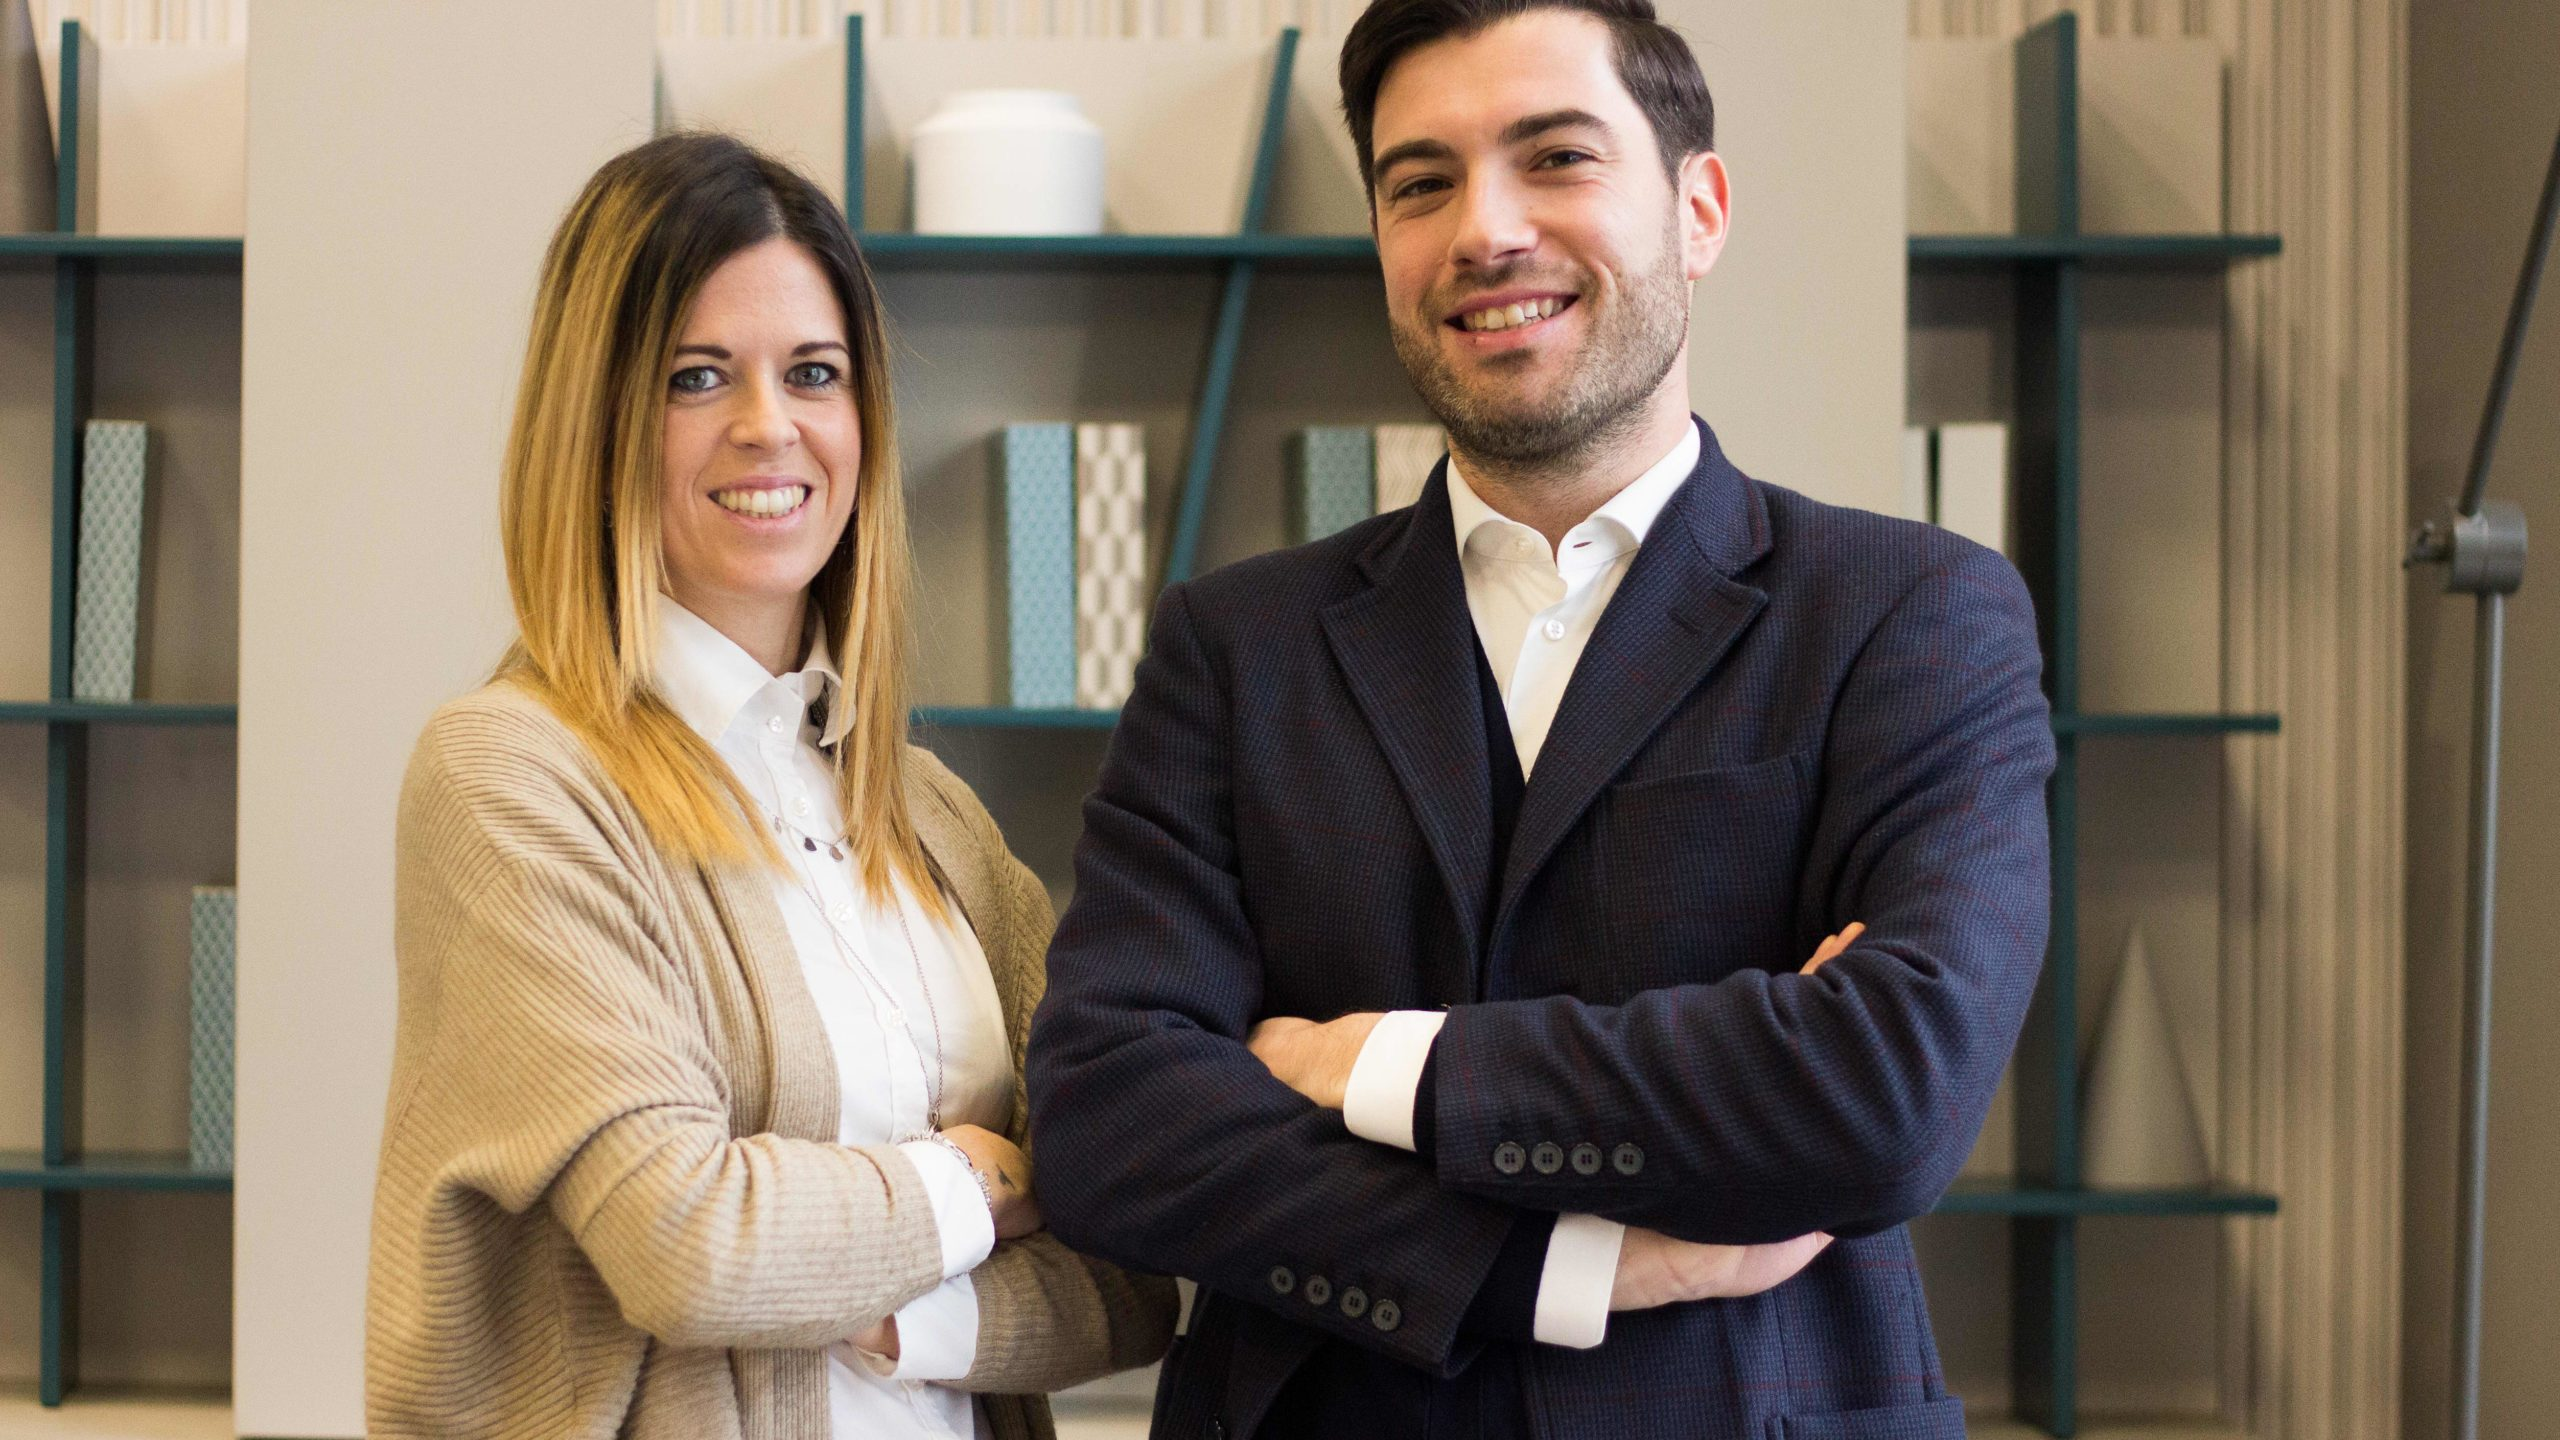 Febal Casa Arredo Team about us